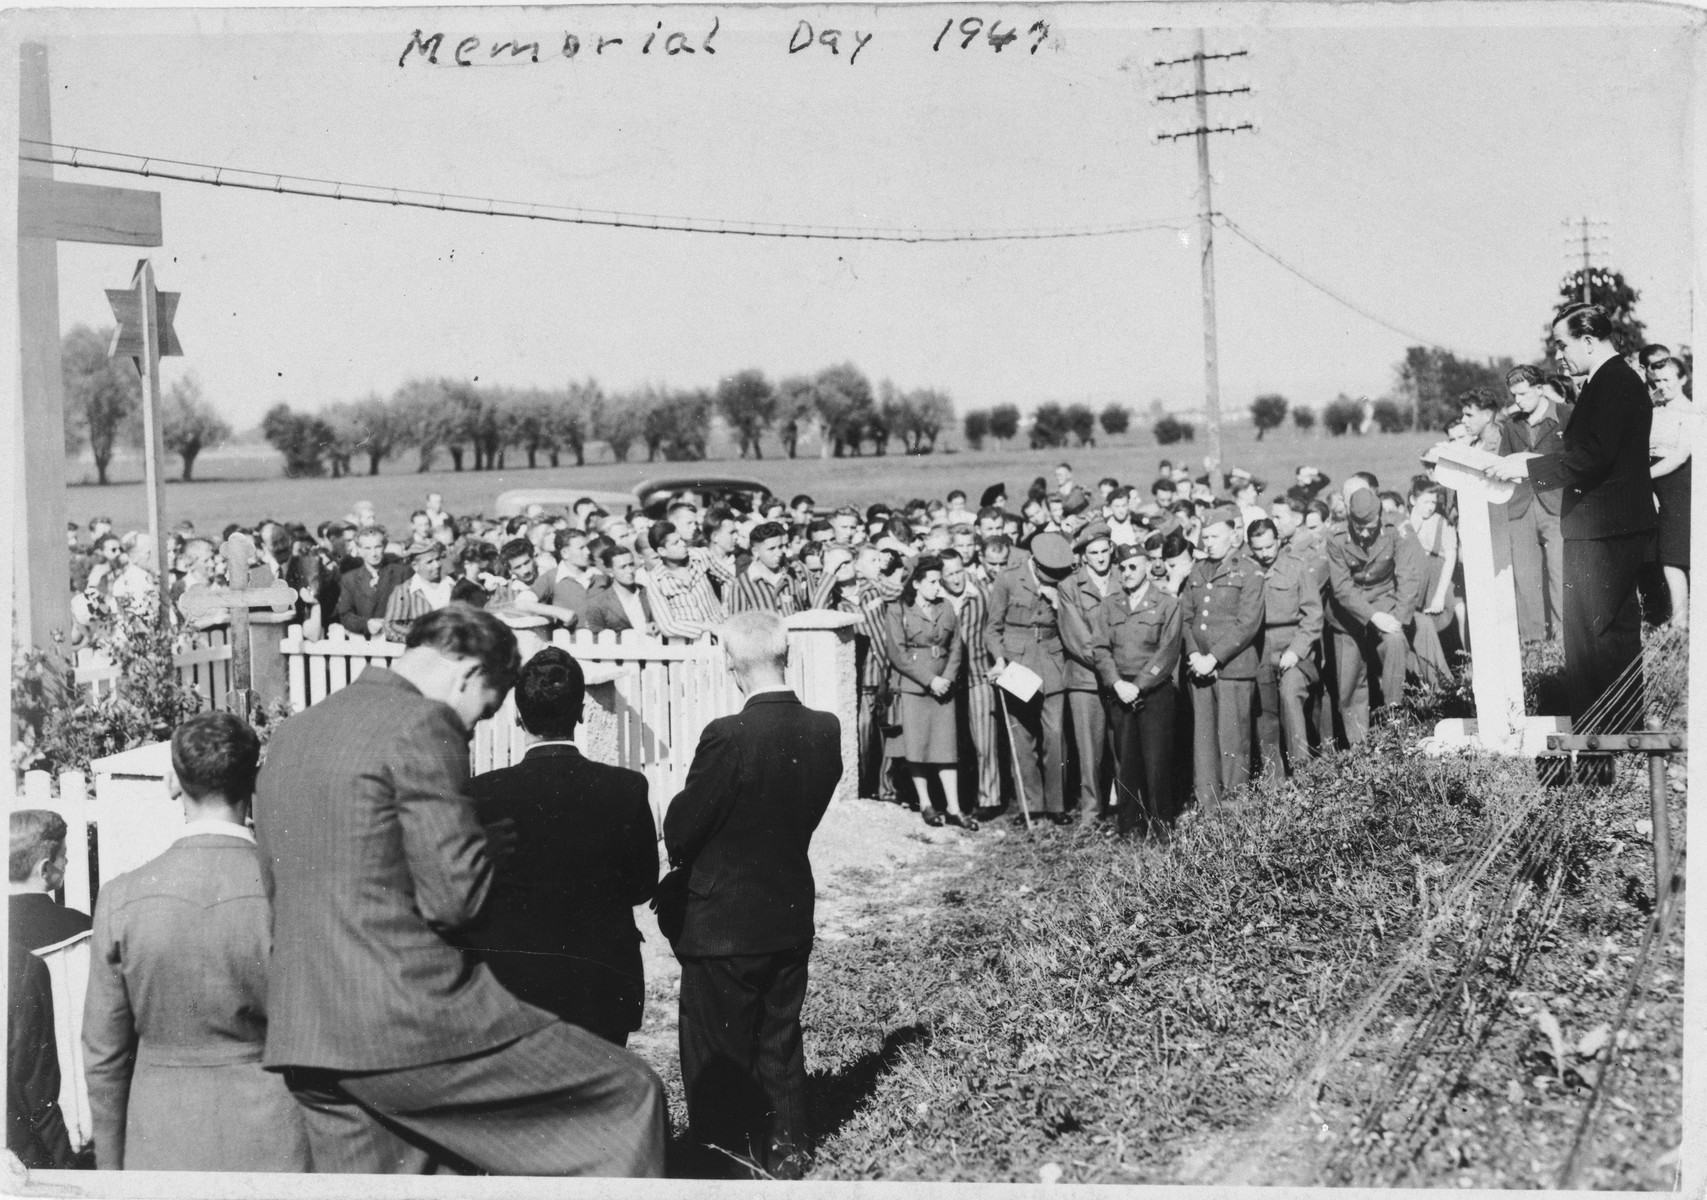 Jewish displaced persons gather for the dedication of a memorial at the site of the Pocking concentration camp.